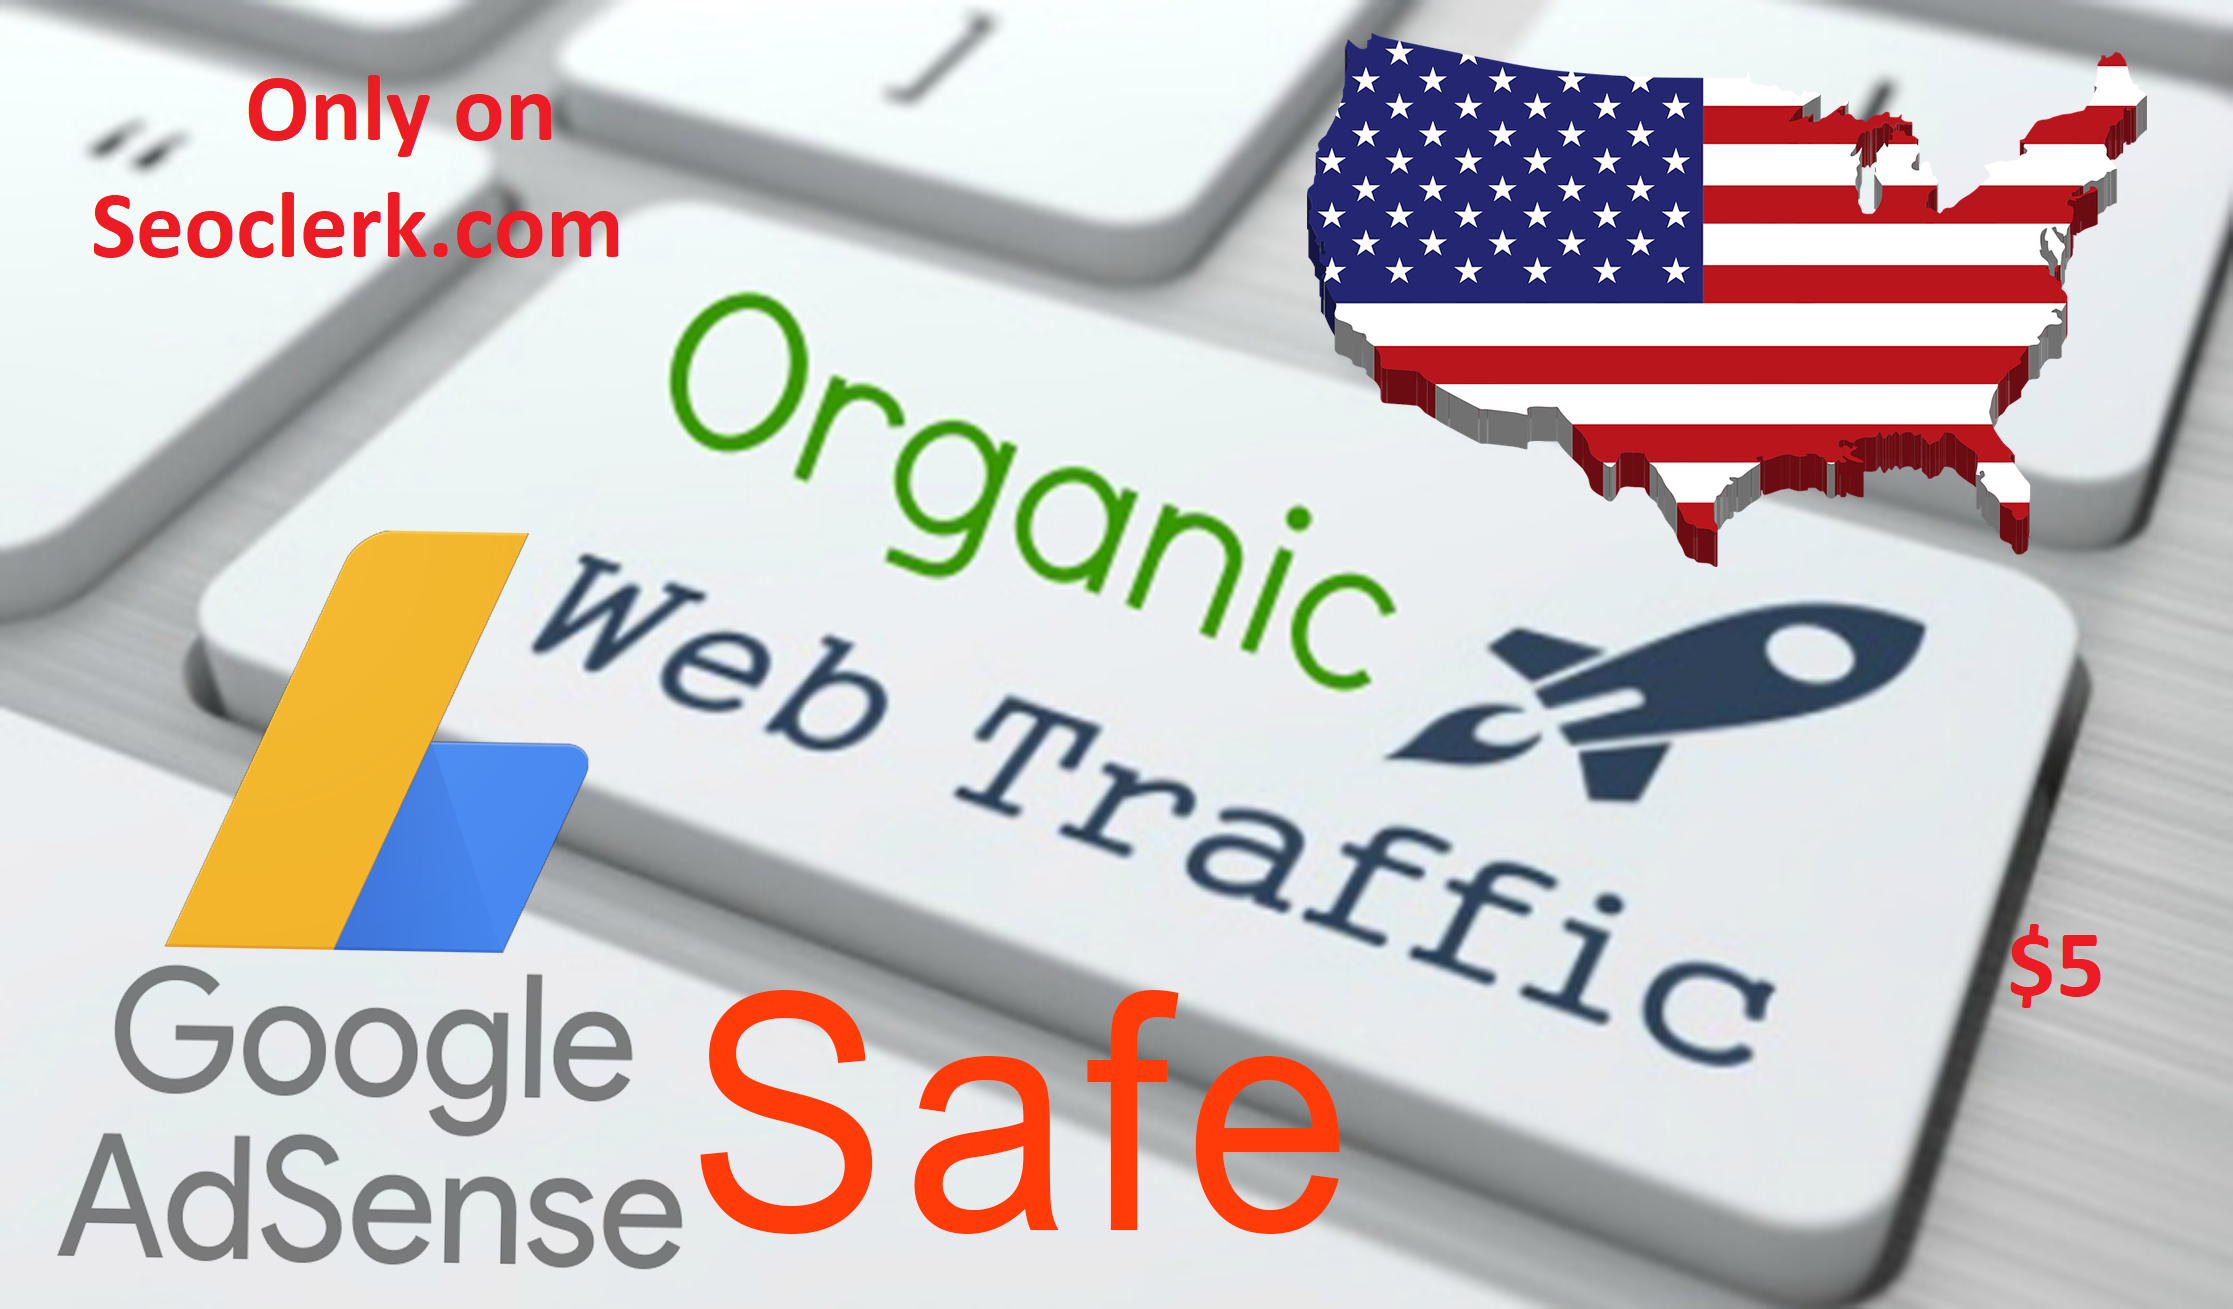 USA keyword target Adsense Safe, organc traffic, for 30 days